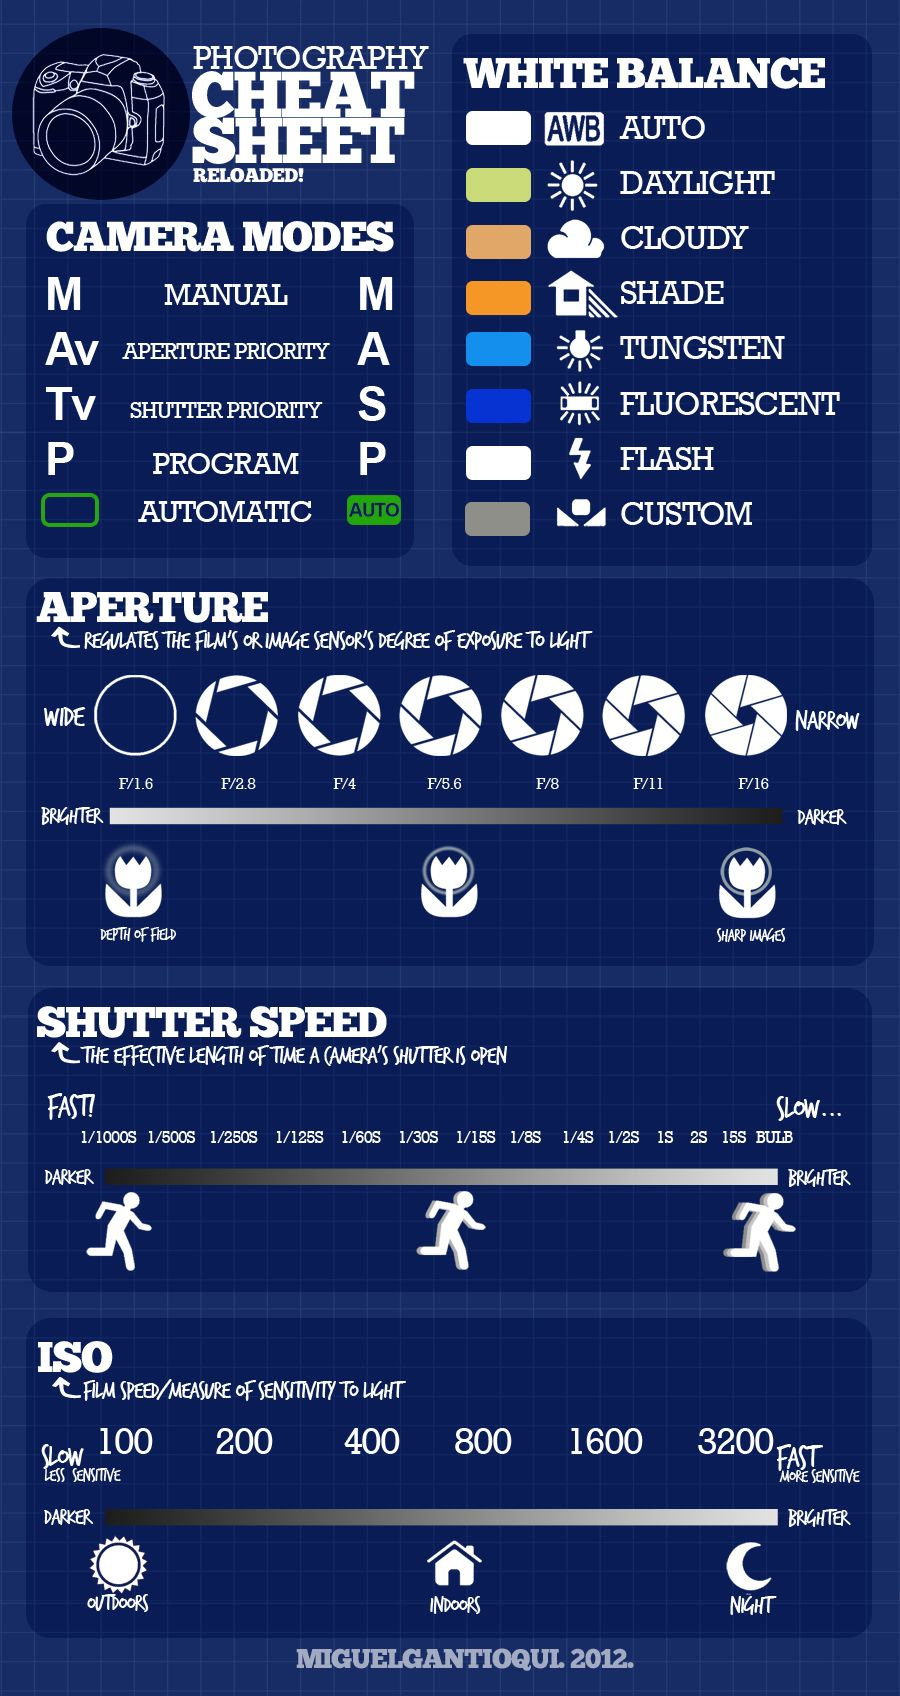 The Ultimate Photography Cheat Sheet Every Photography Lover Needs Save Post Technology by Amanda DeWitt